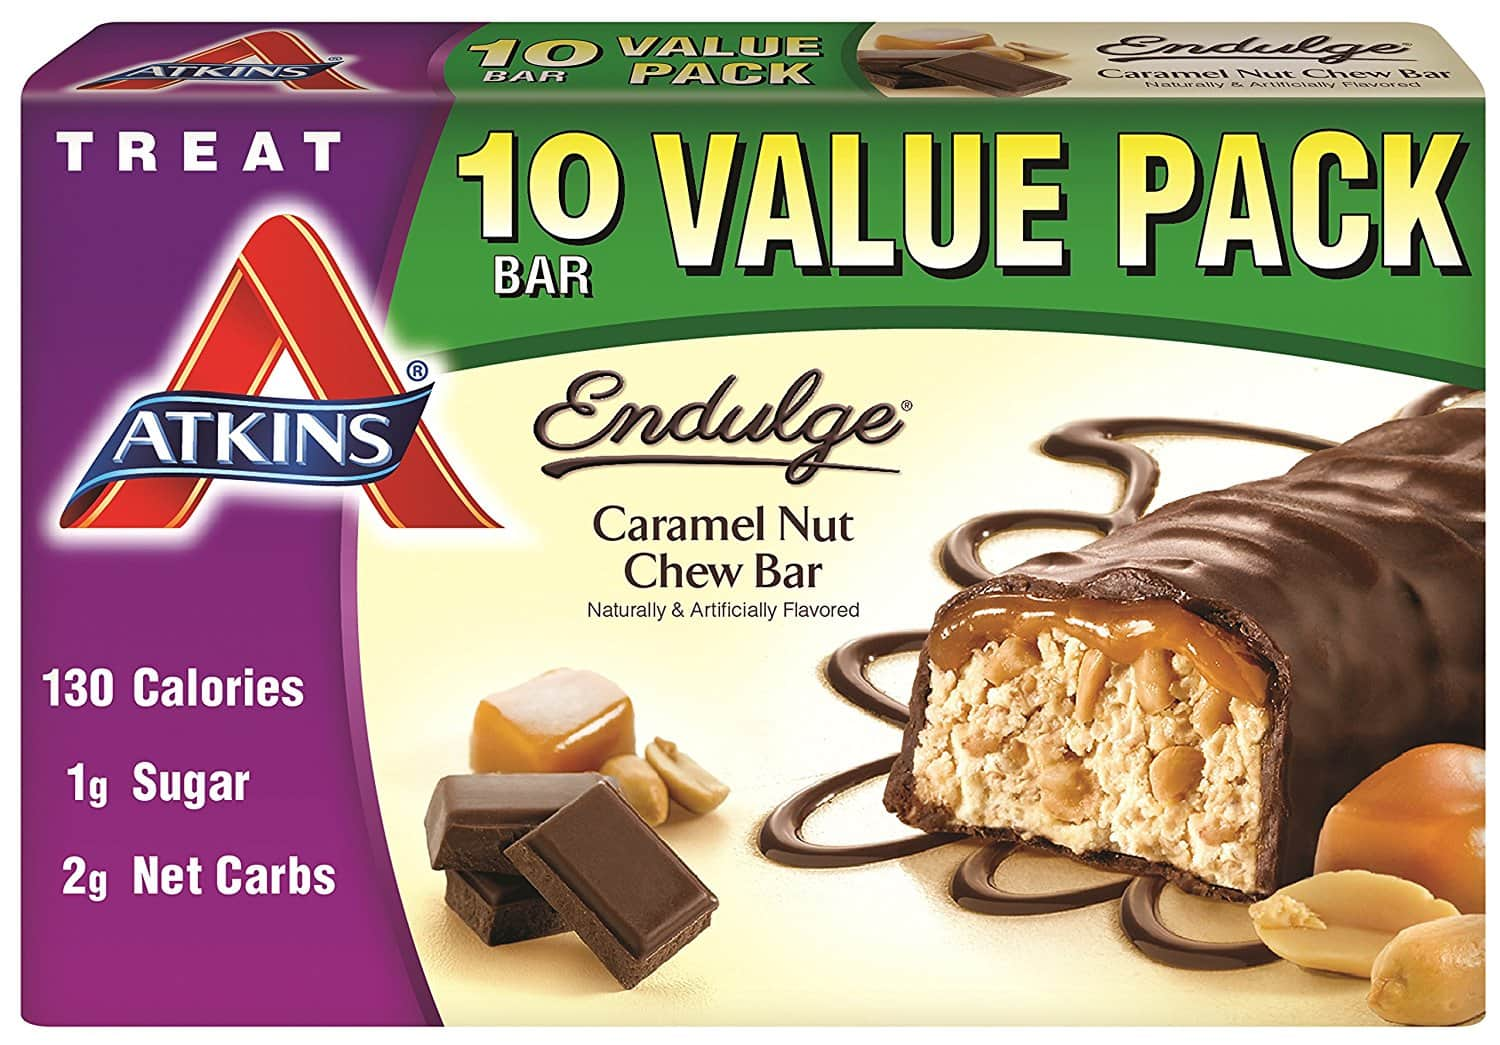 Atkins Endulge Treat, Caramel Nut Chew Bar,Value pack, 10 Bars $7.39 $7.36